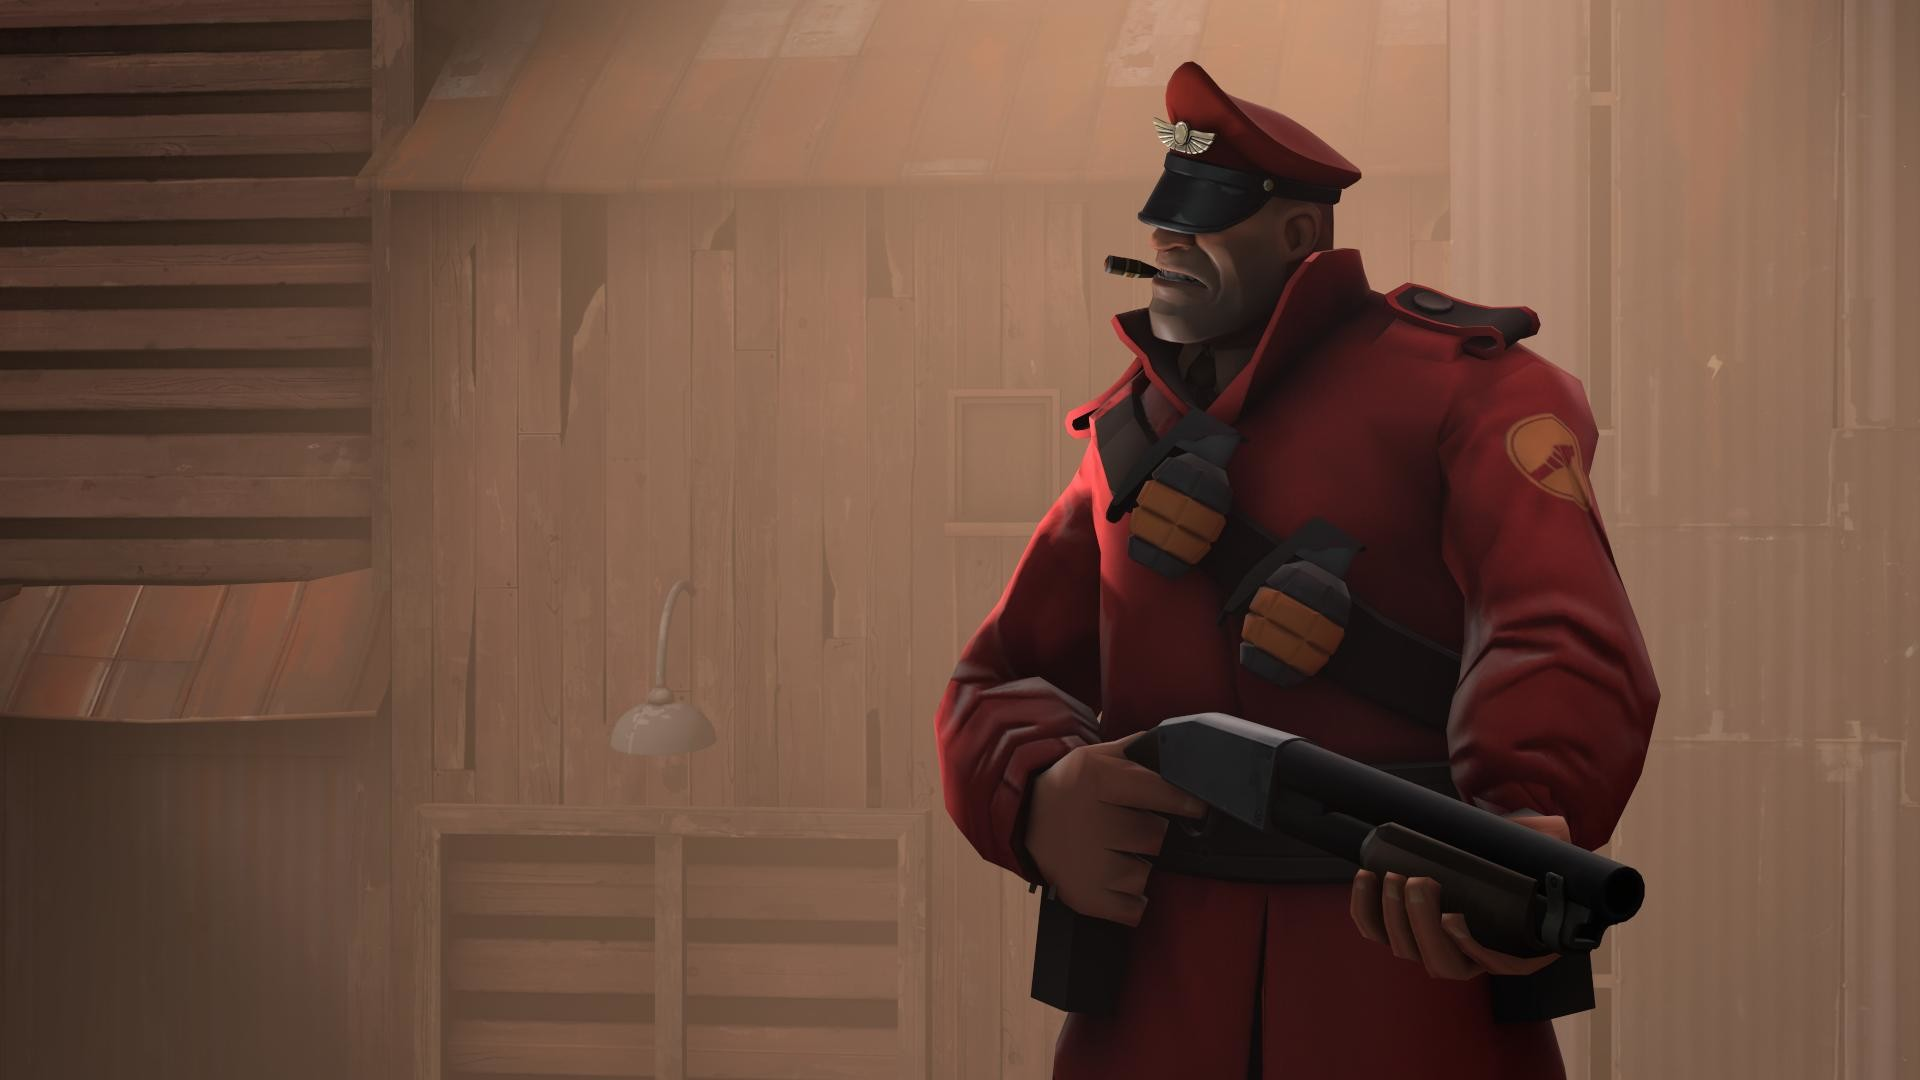 1920x1080 Tf2 Soldier Wallpapers - Wallpaper Cave